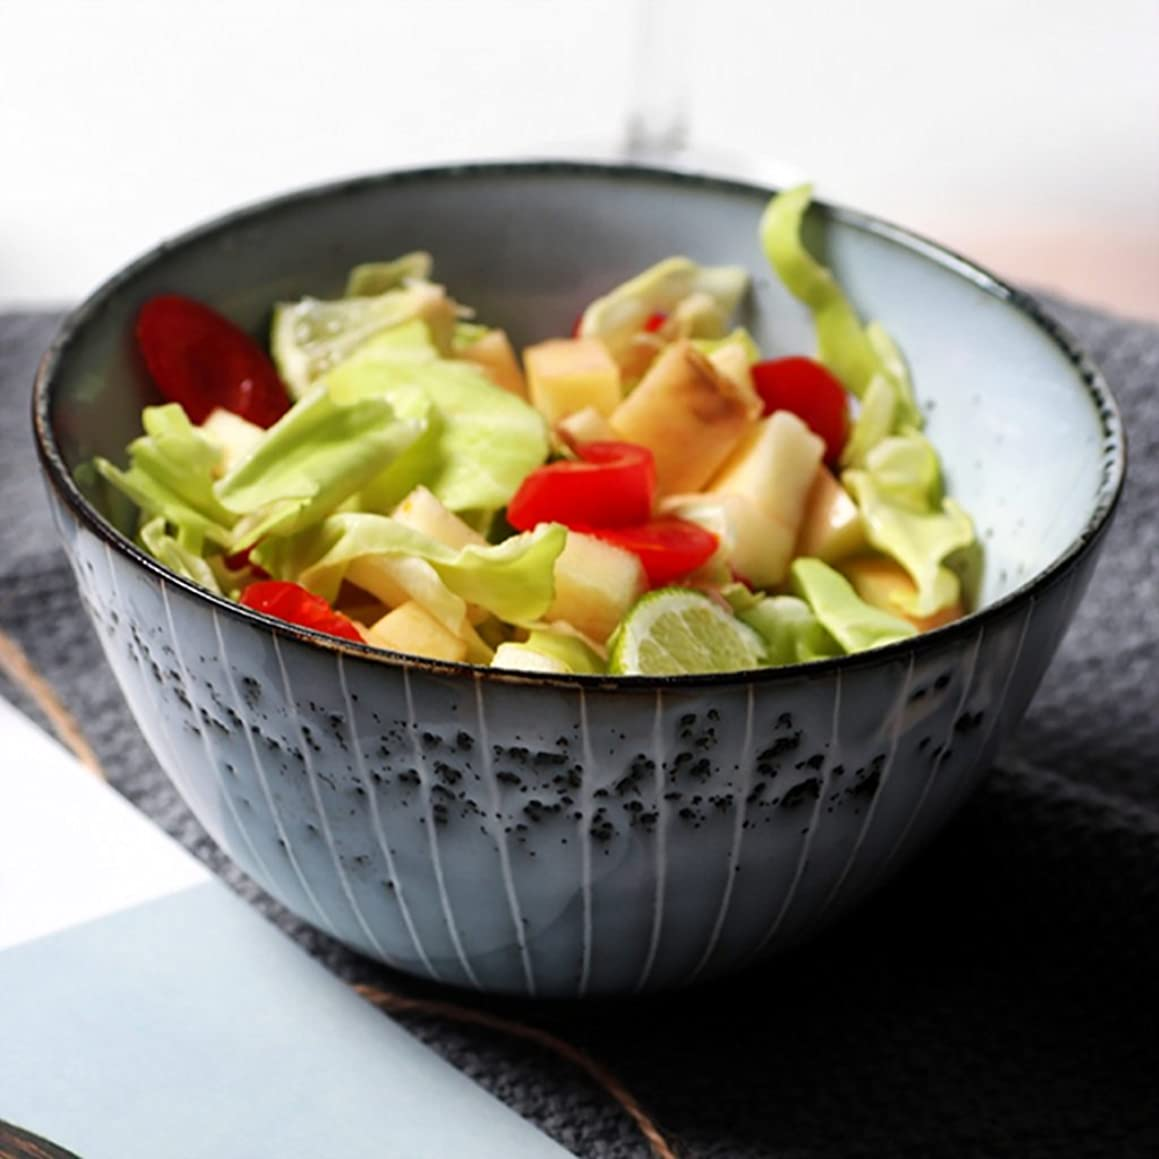 Household Tableware Japanese Style Ceramic Creative Ramen Soup Bowl Salad Bowl Dessert Bowl Fruit Plate (Size: Diameter 15.5CM High 8.5CM)